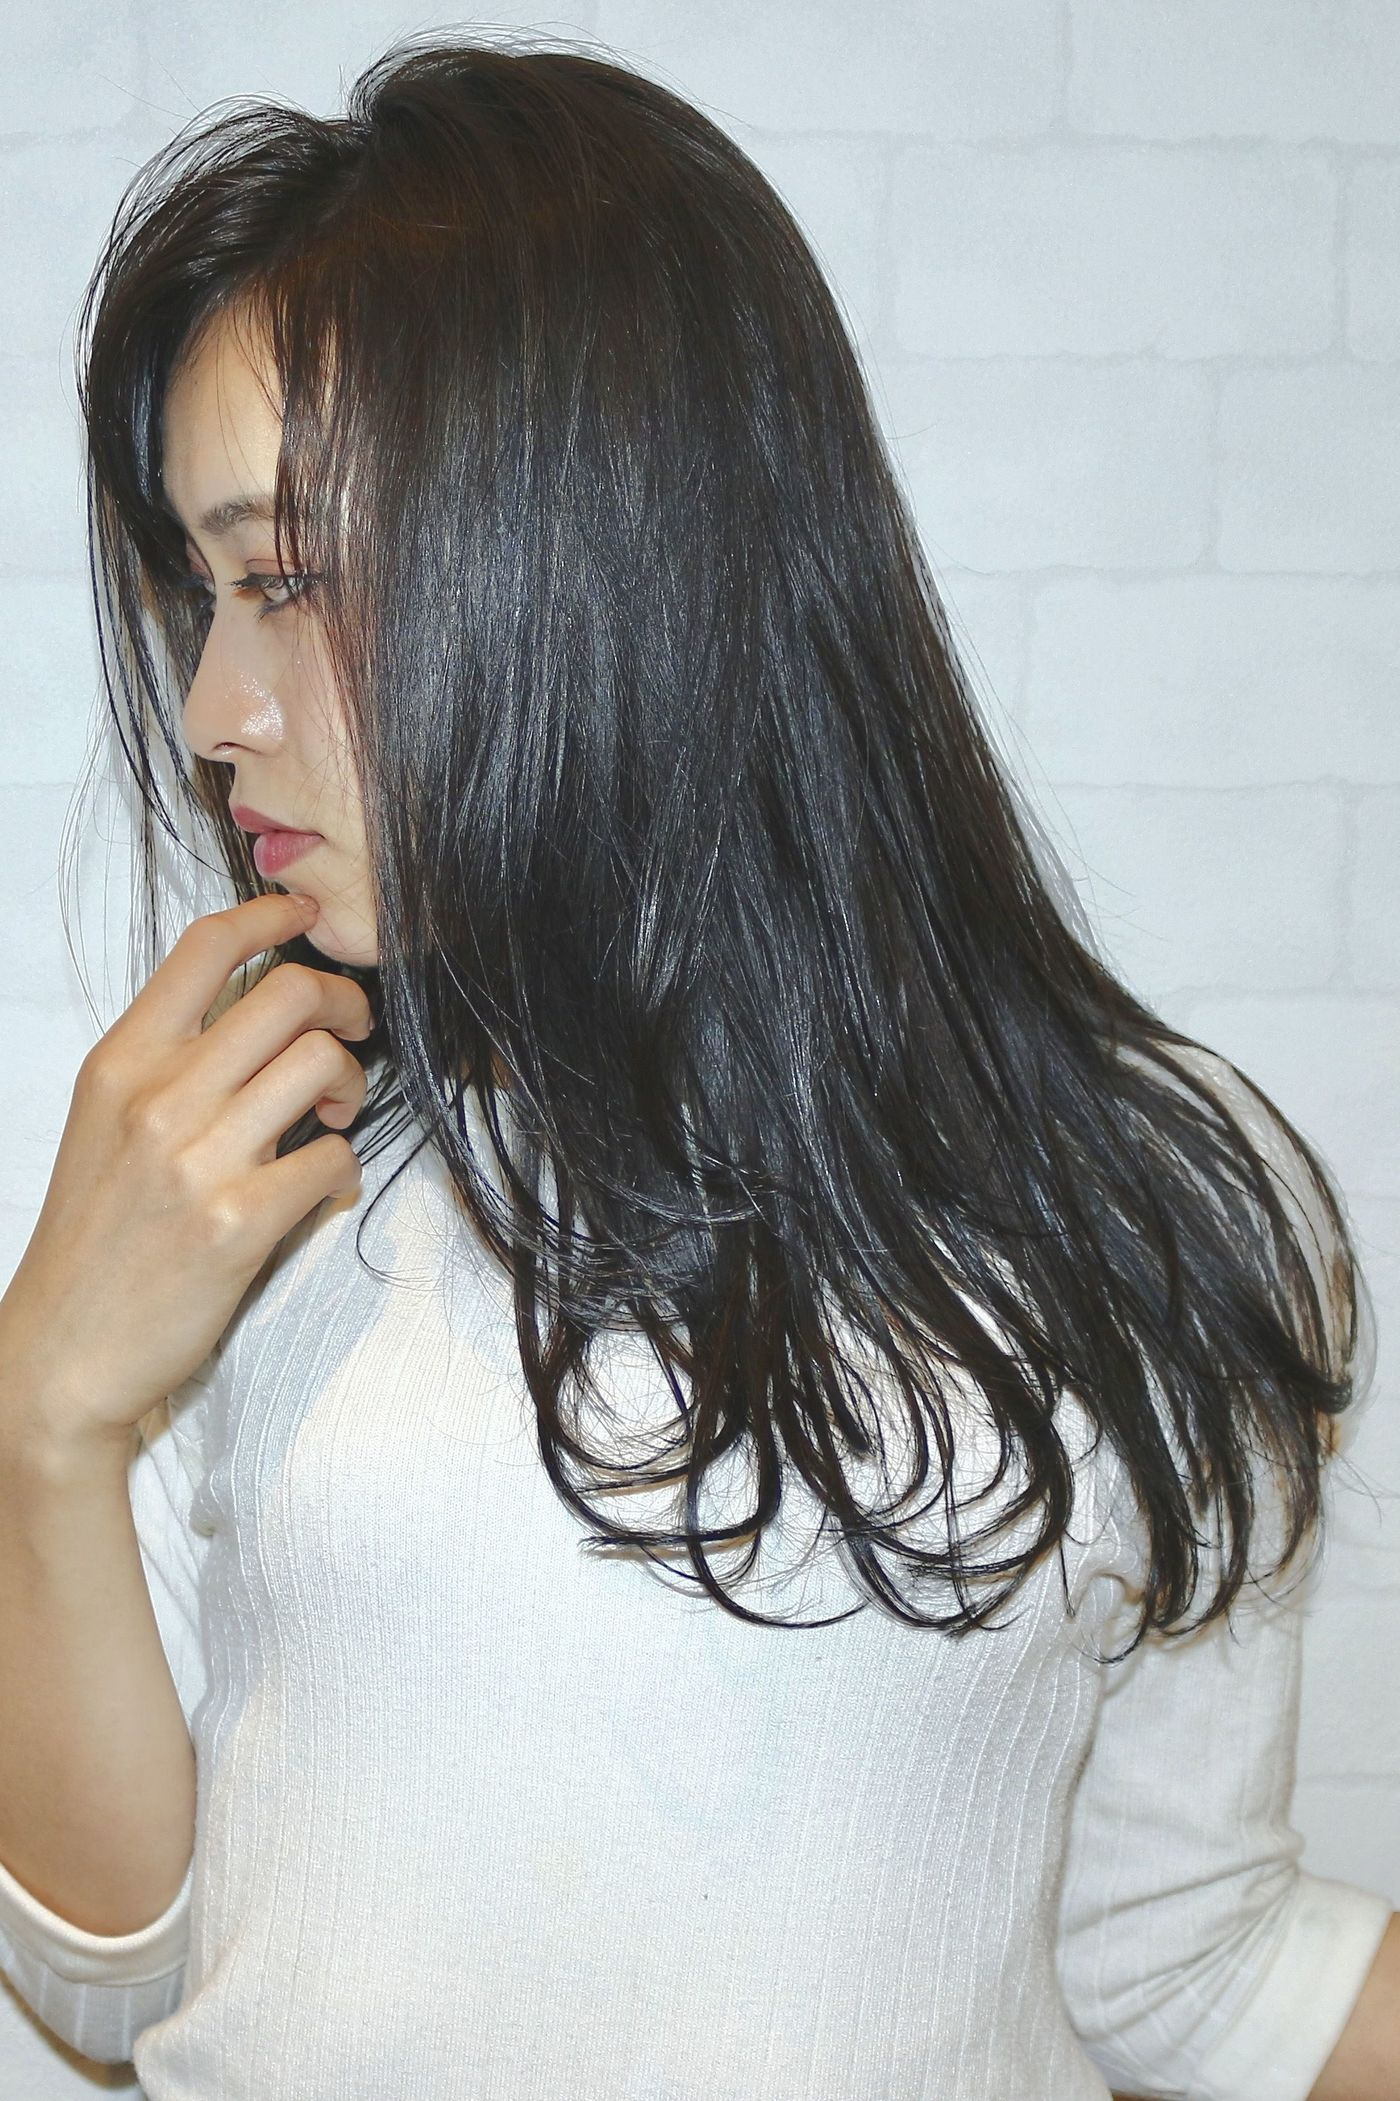 New The 10 Best Hairstyles With Pictures 韓国女子風のネイビー